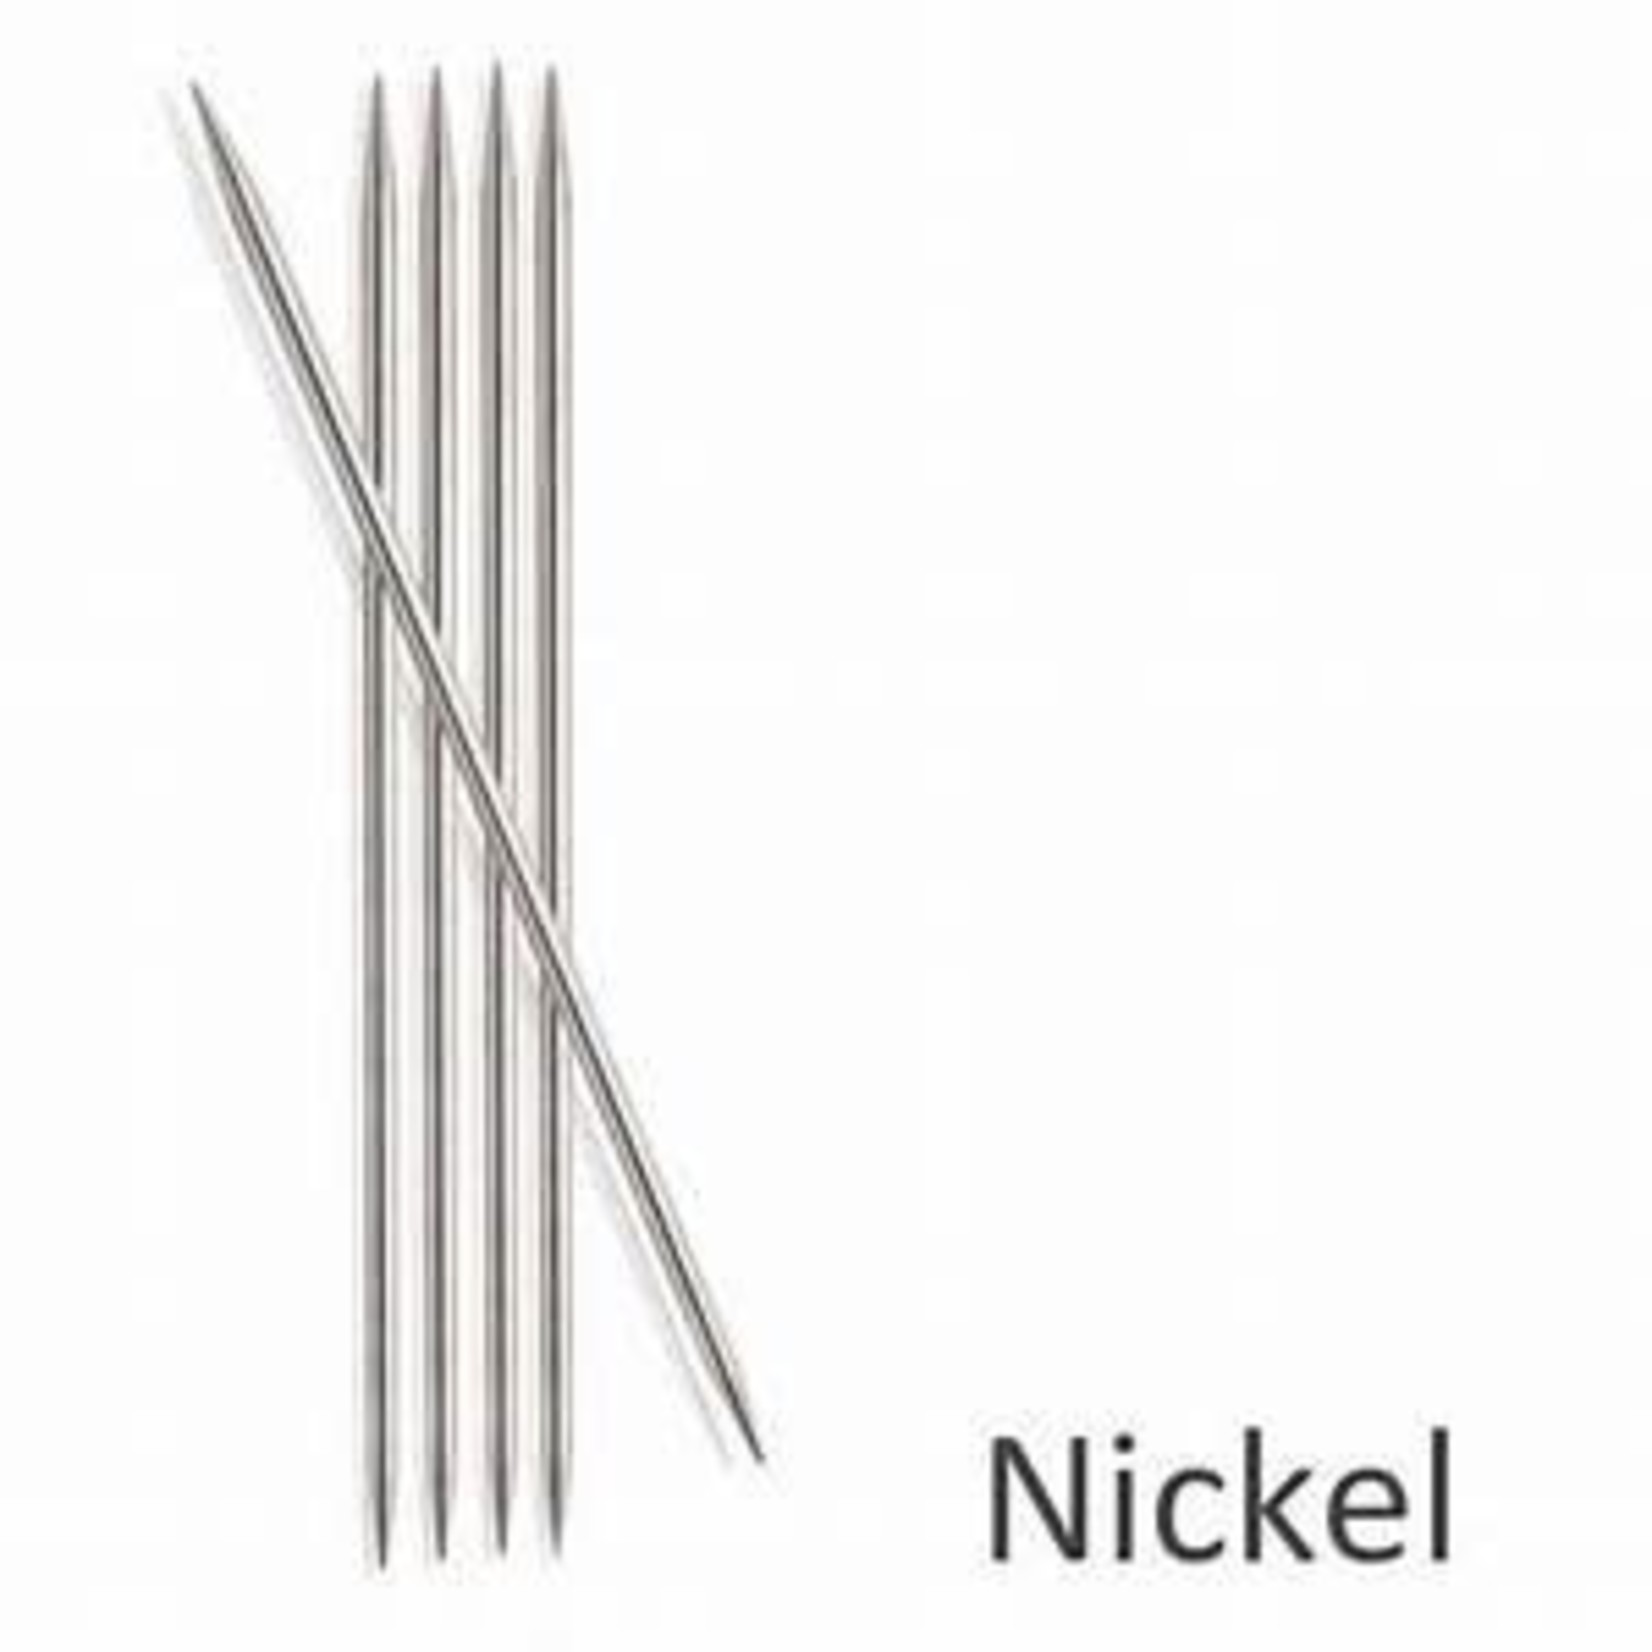 """Knit Picks KNIT PICKS Nickel Plated Double Point Knitting Needles 15cm (6"""")"""